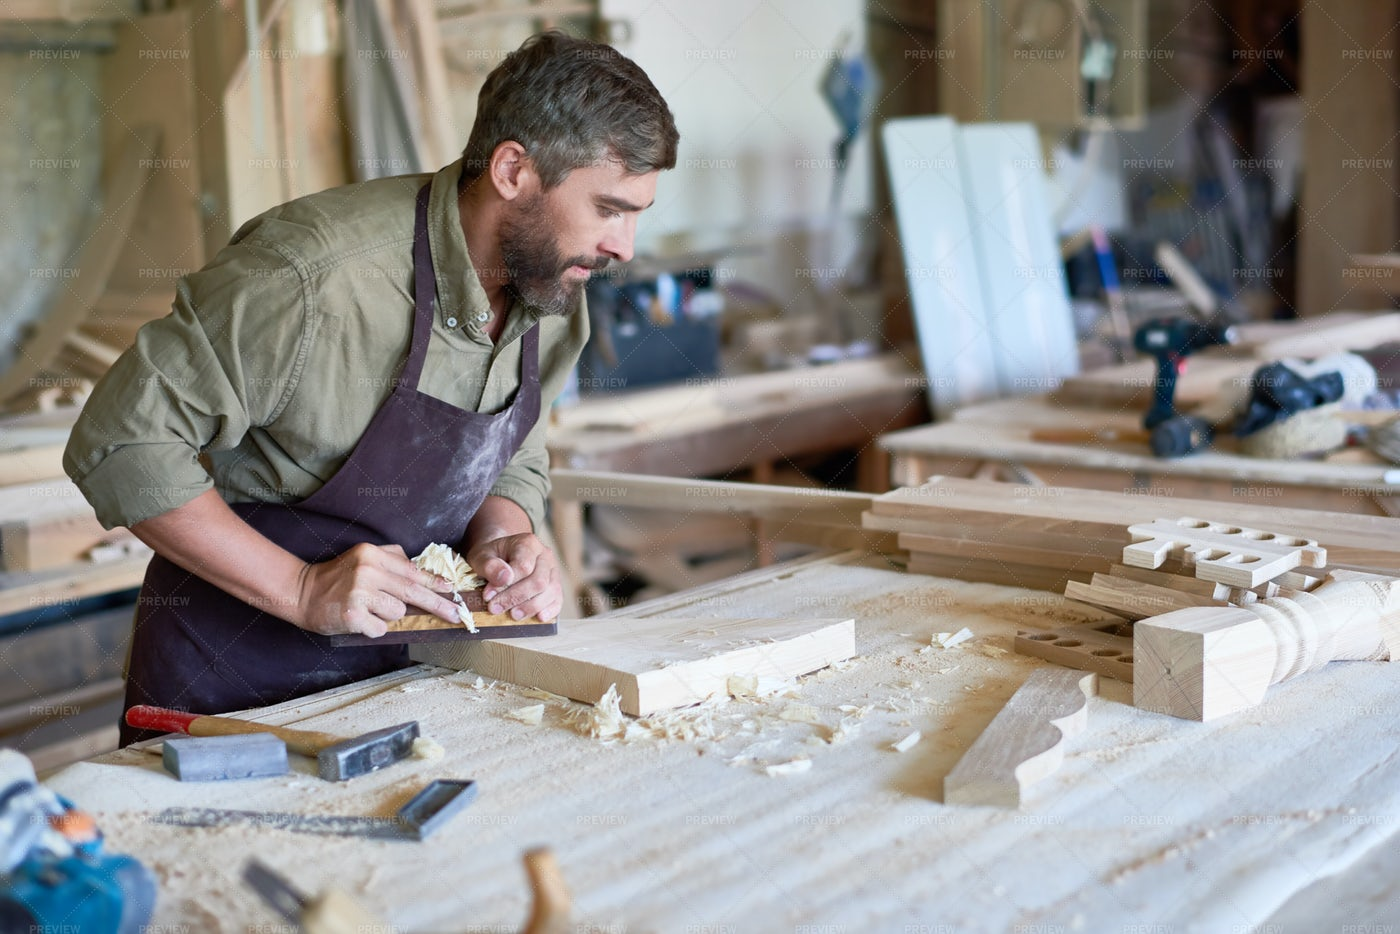 Bearded Carpenter Working With Wood...: Stock Photos